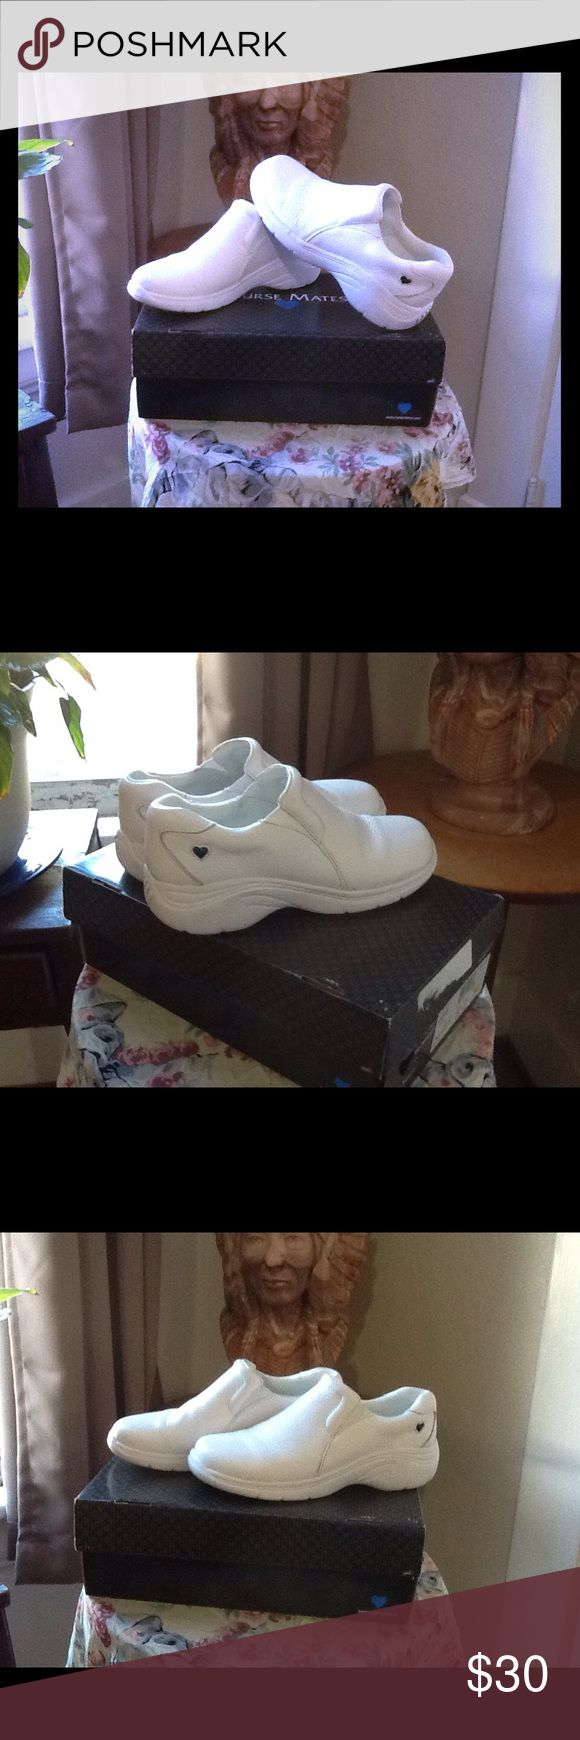 NURSE MATES Only worn a few times. To small for me. Dove white. Make your feet HAPPY!!!  I love mine! MAKE ME AN OFFER! Nurse Mates Shoes Mules & Clogs